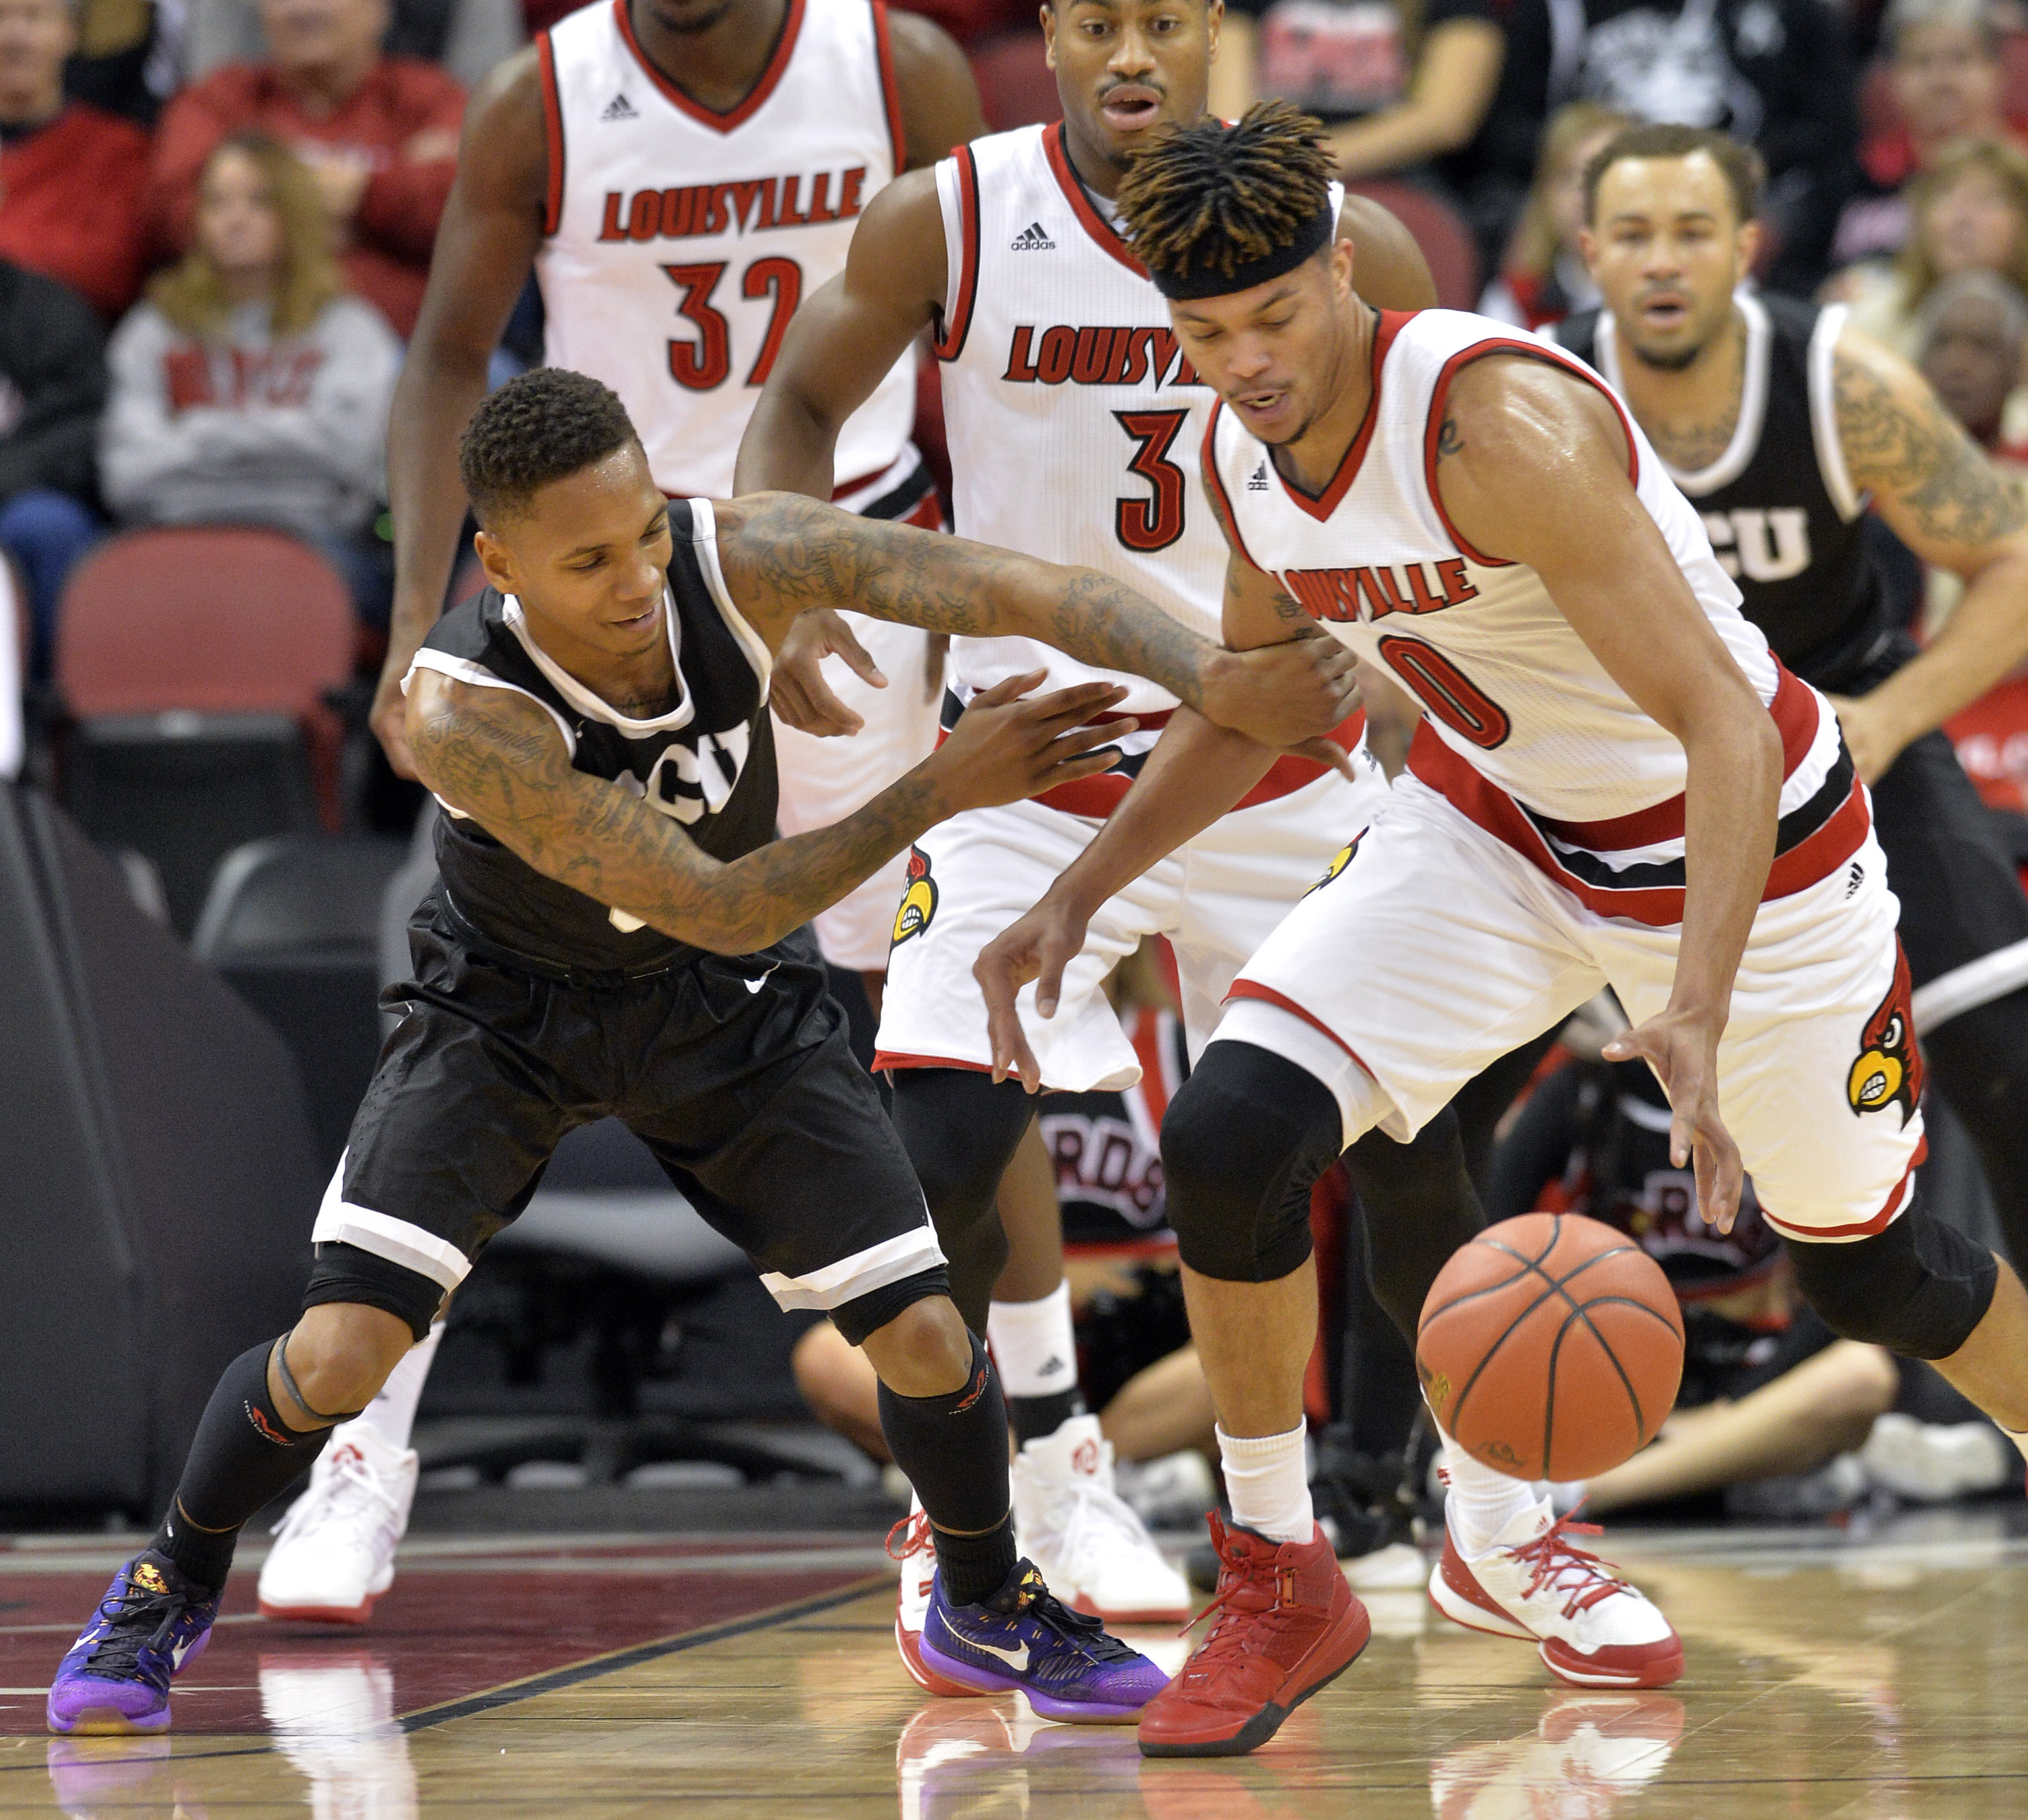 Louisville's Damion Lee (0) battles with Grand Canyon's DeWayne Russell (0) for a loose ball during the first half of an NCAA college basketball game, Saturday, Dec. 5, 2015, in Louisville, Ky. (AP Photo/Timothy D. Easley)